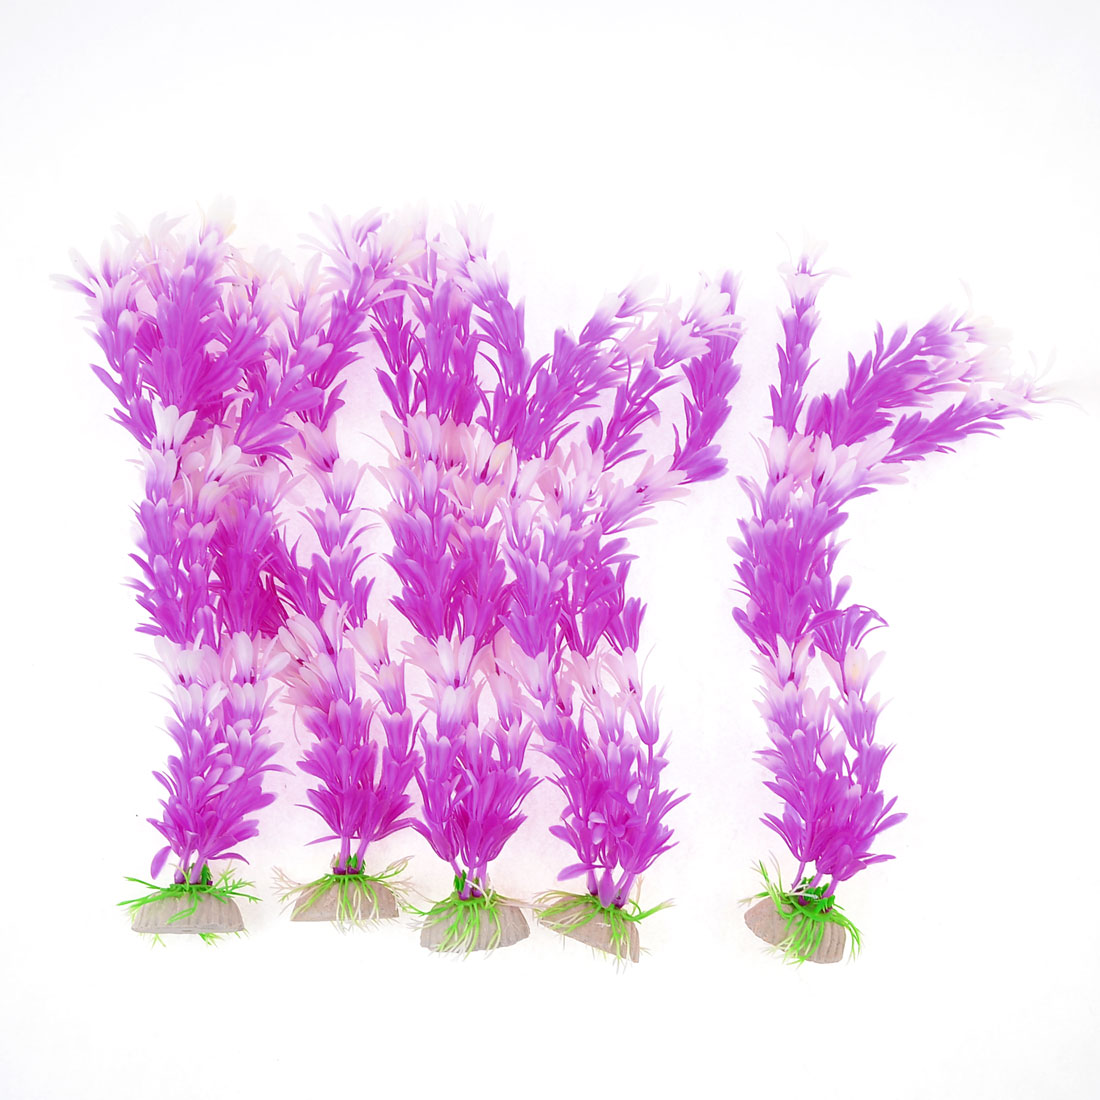 5 Pcs Fish Tank Aquascaping Purple White Artificial Aquatic Grass Ornament 11.4""